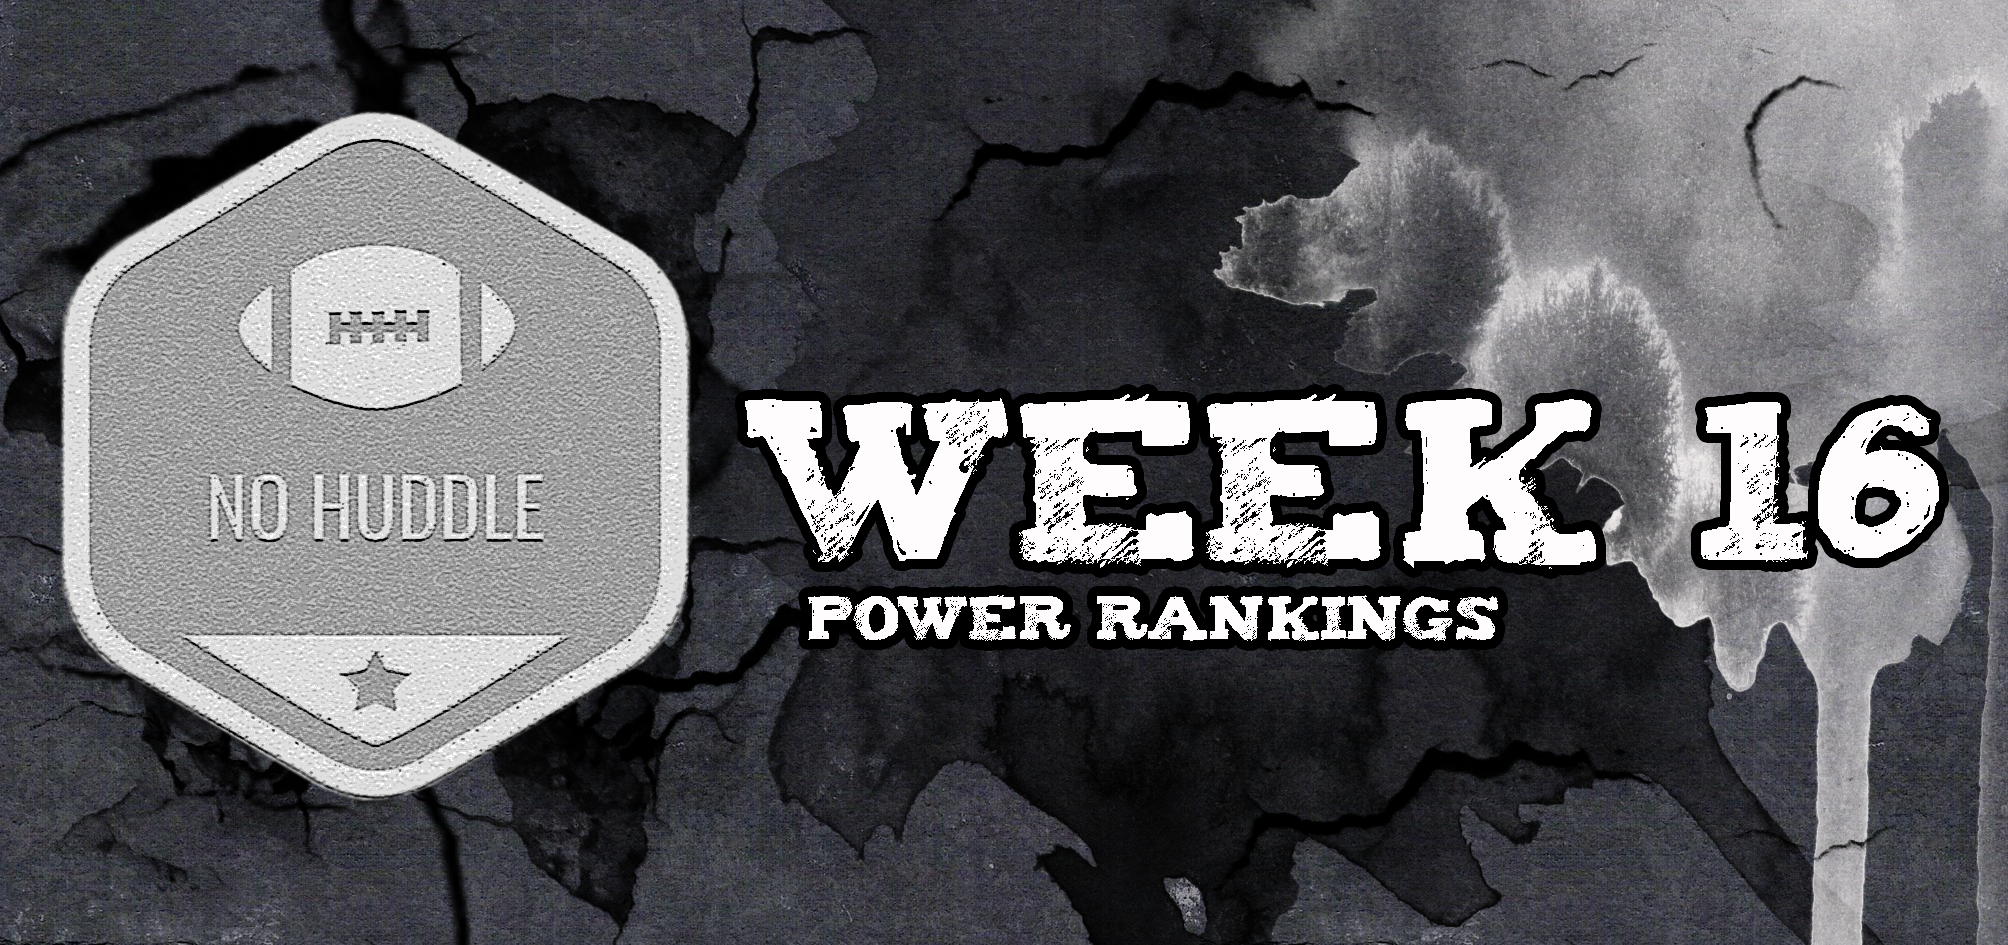 Power Rankings: Semana 16